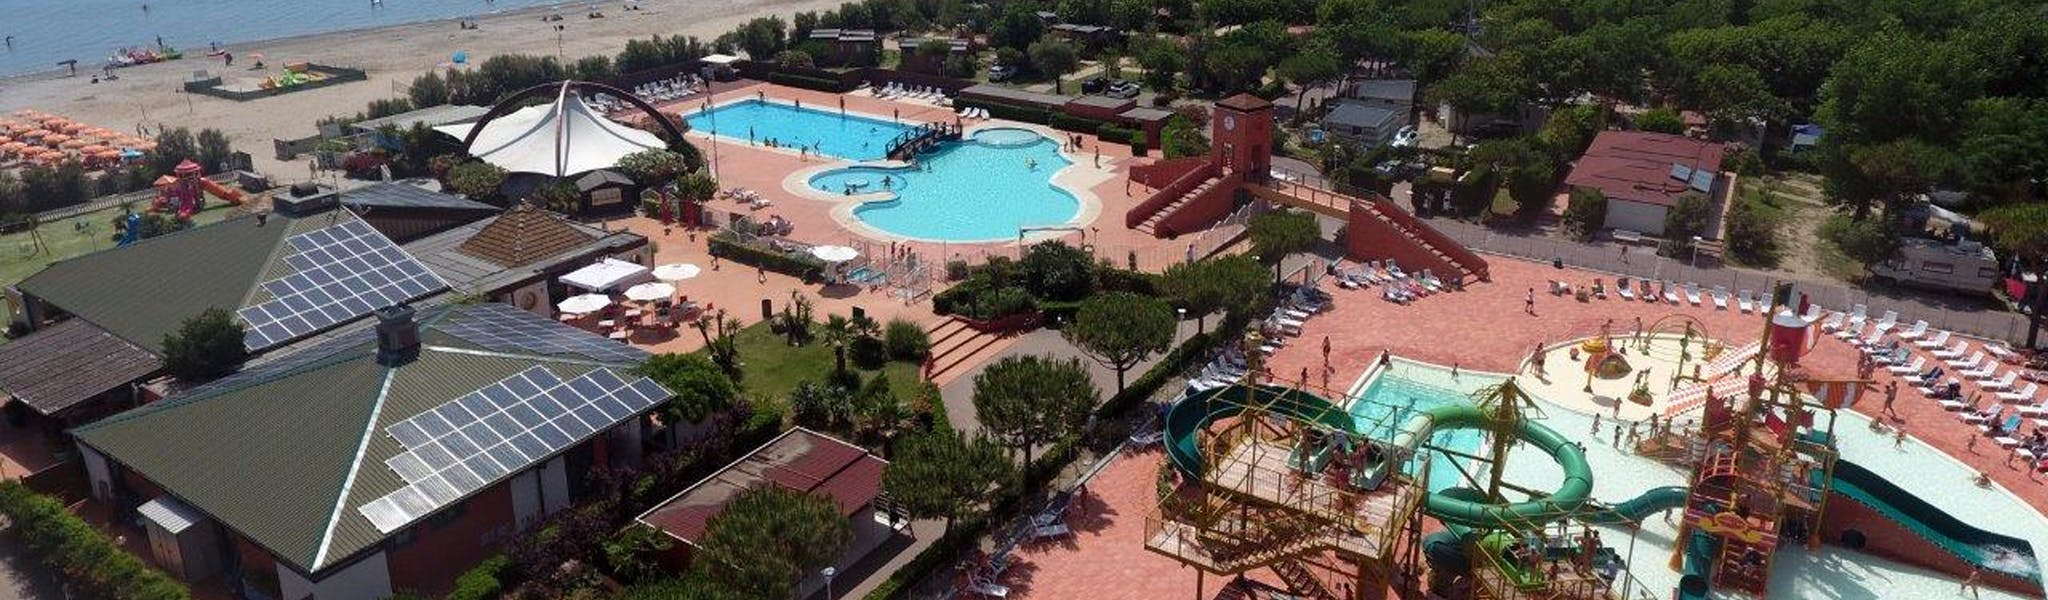 Camping Spiaggia e Mare foto vanuit lucht